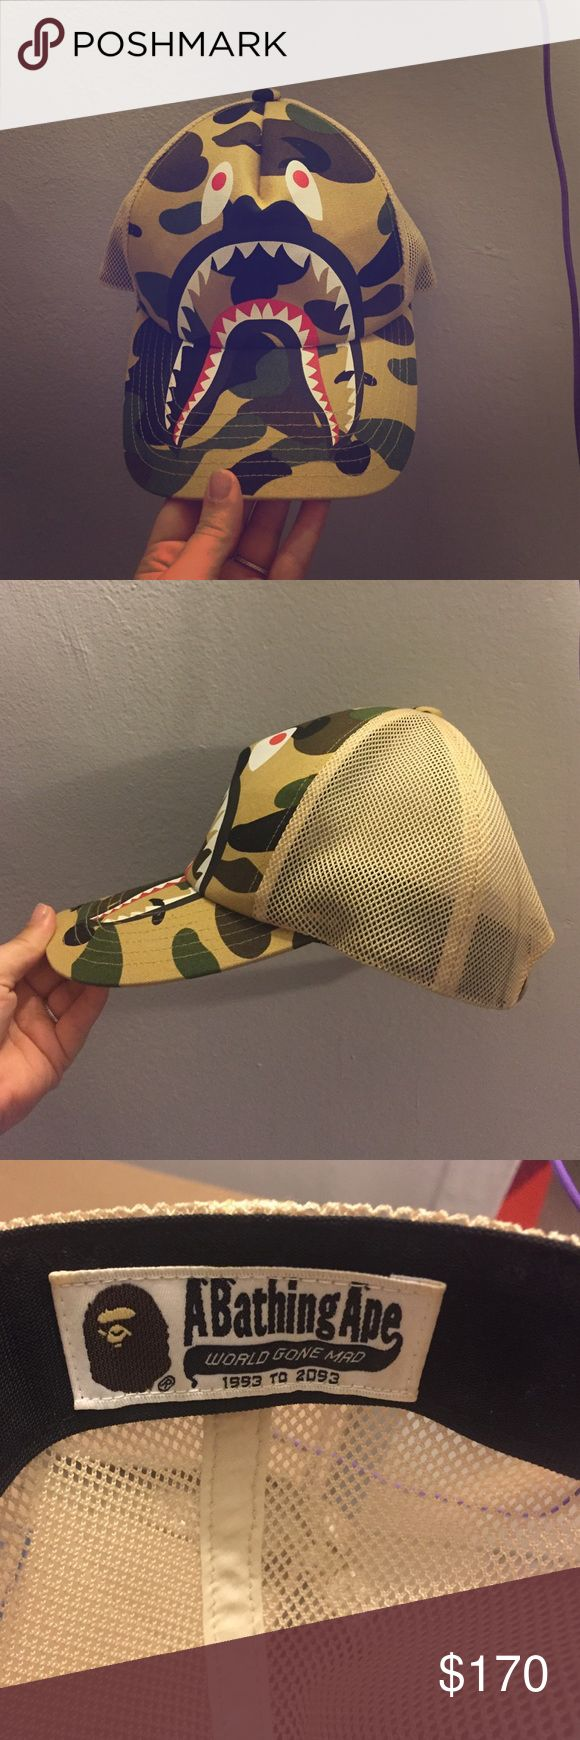 Bape trucker hat Sold out, authentic bought on the bape website feel free to ask any questions! Offers as well Accessories Hats